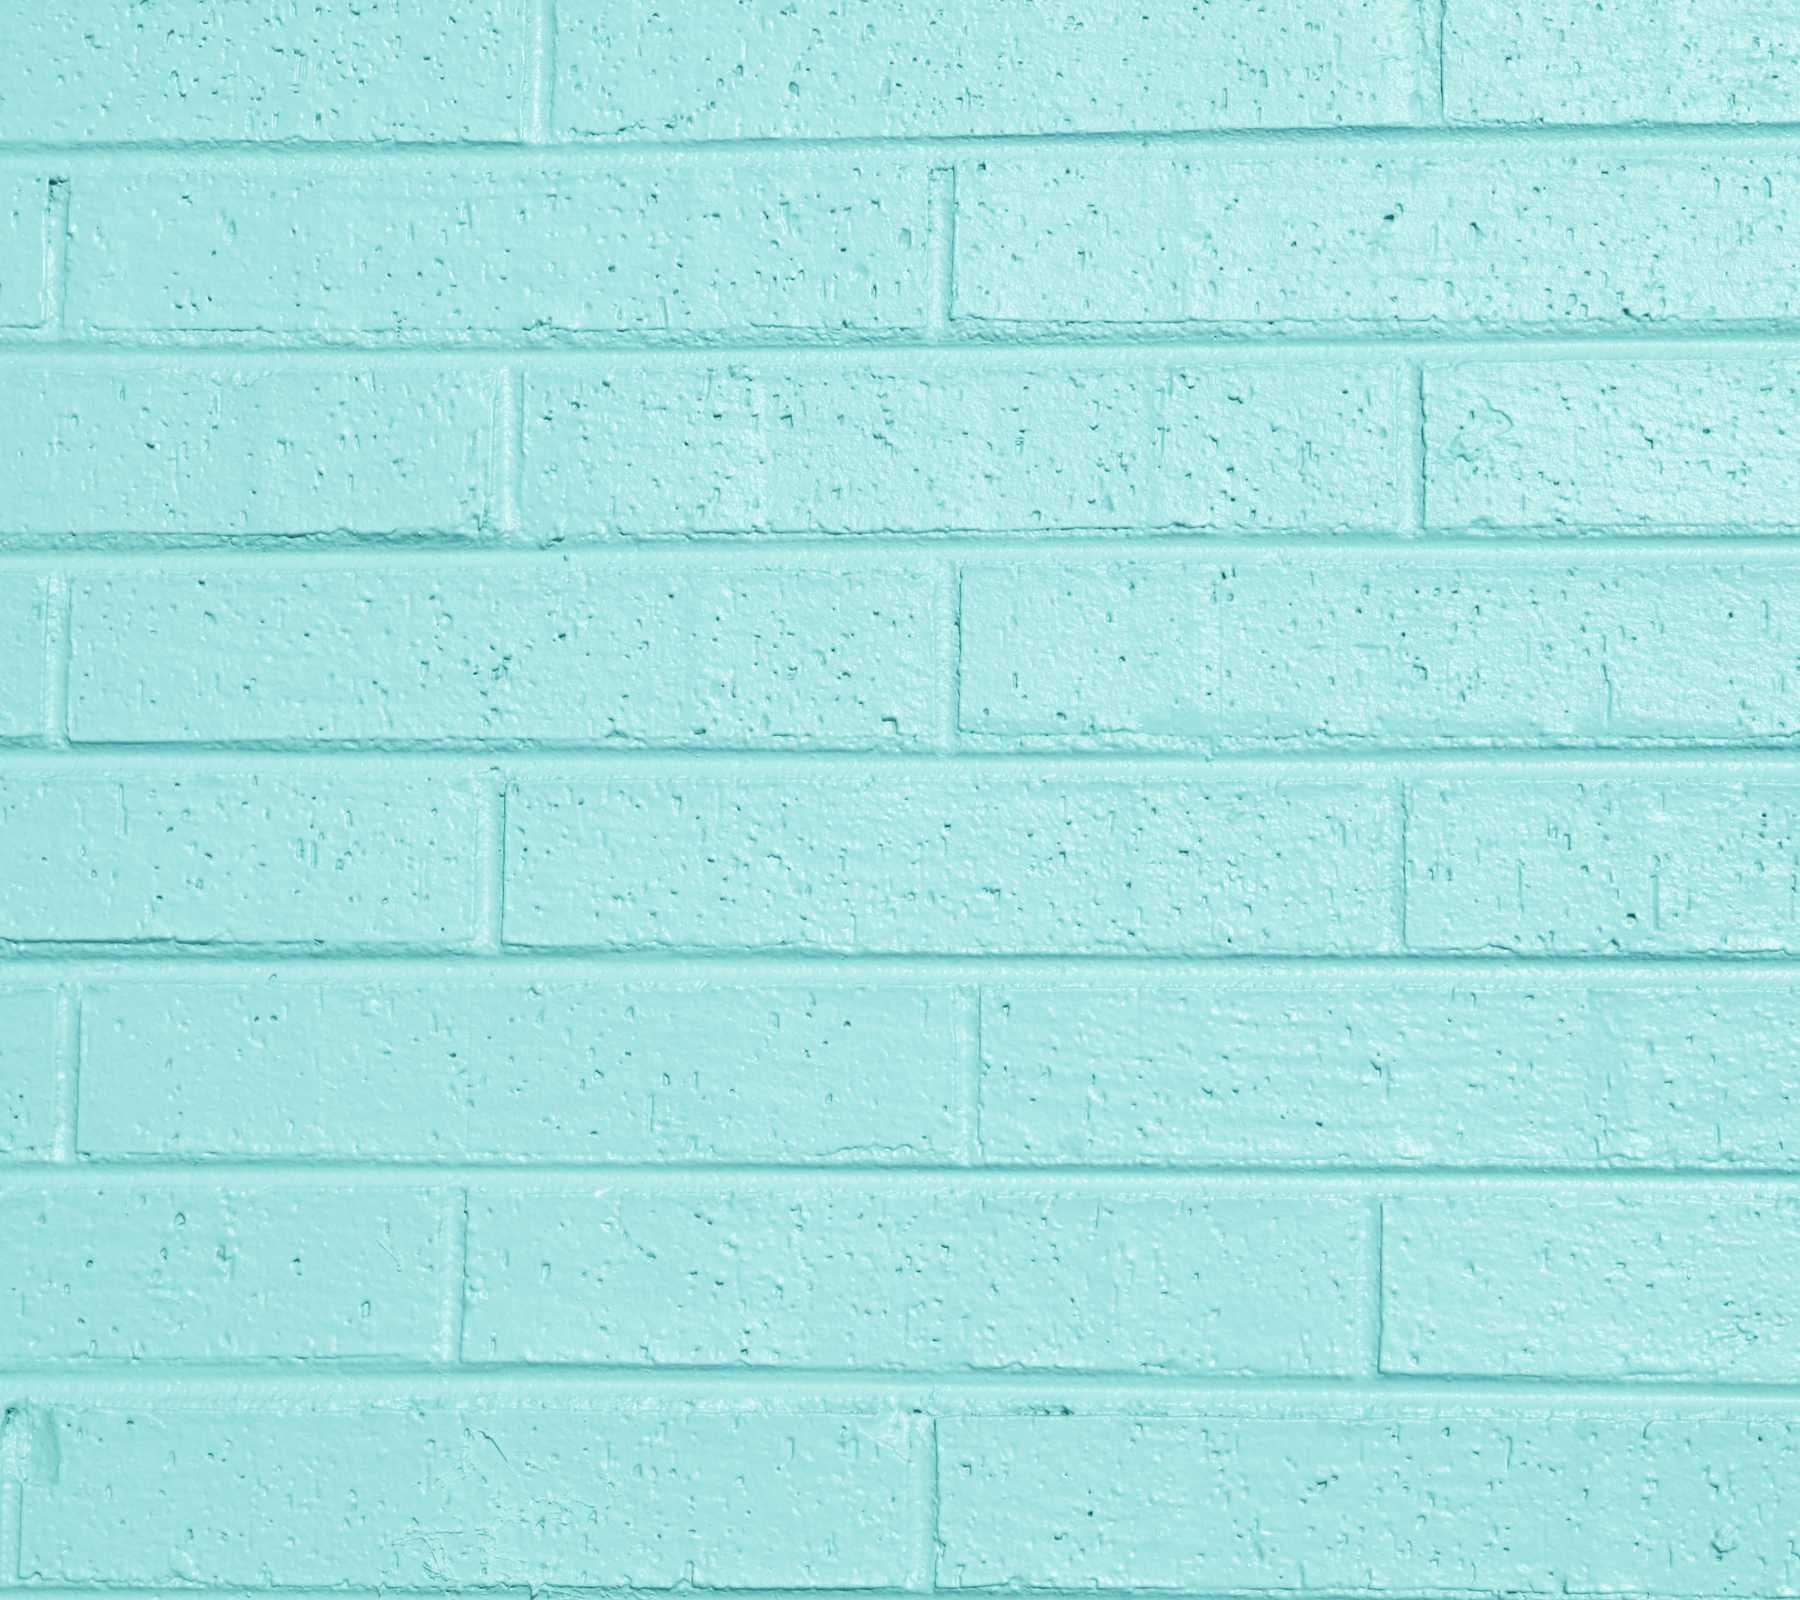 Turquoise Brick Wallpaper Color Aqua Personality Background Wallpaper Image Aqua